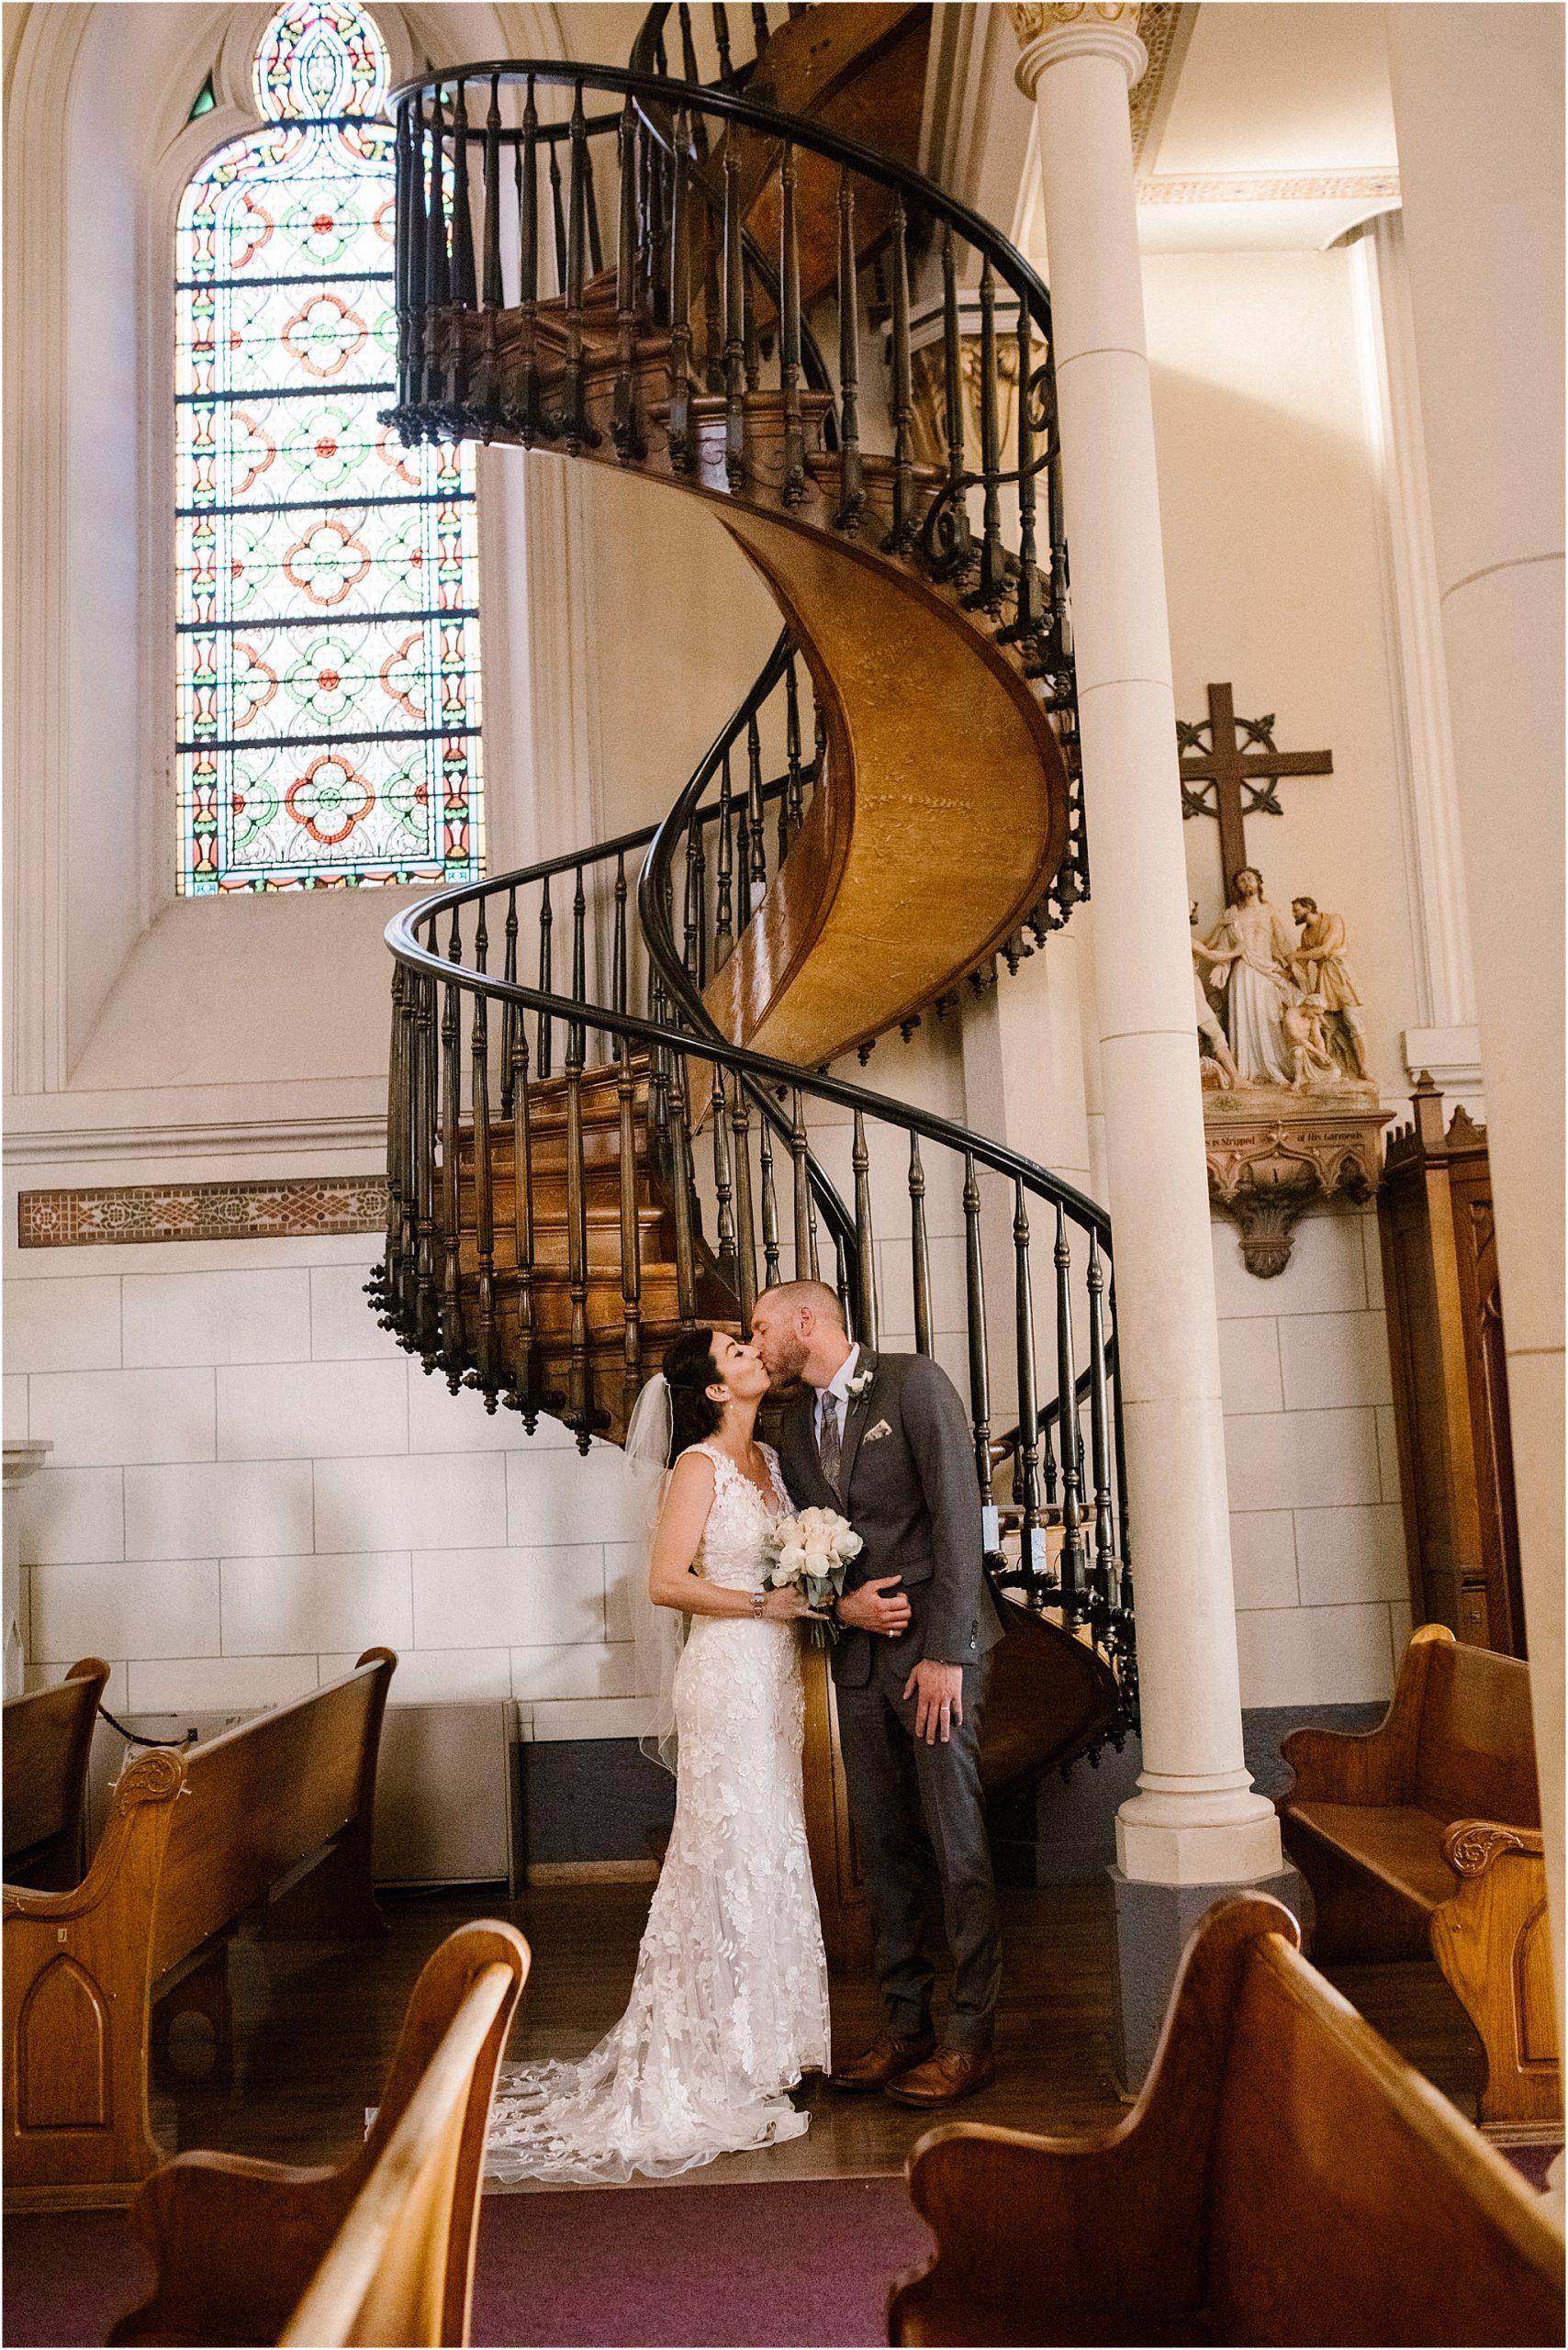 BlueRosePhotography_LaurenandCharles_LorettoChapel16